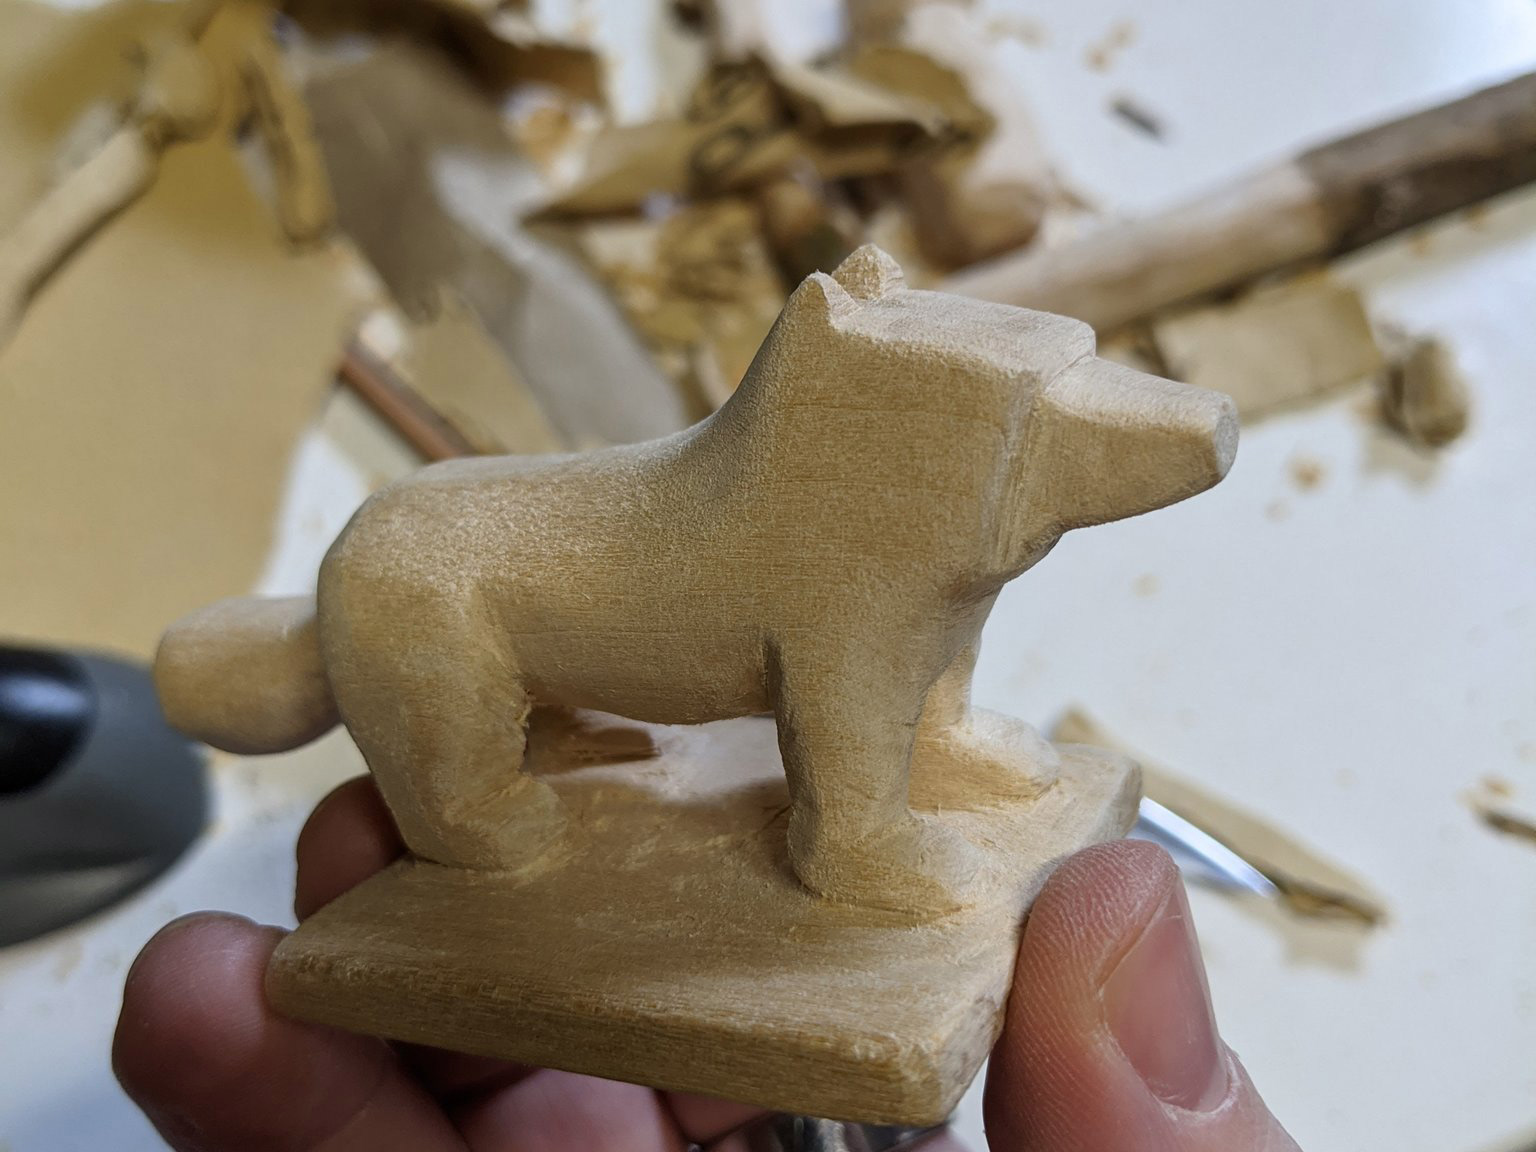 Holding the dog to the side, fully formed and beginning to be smoothed out